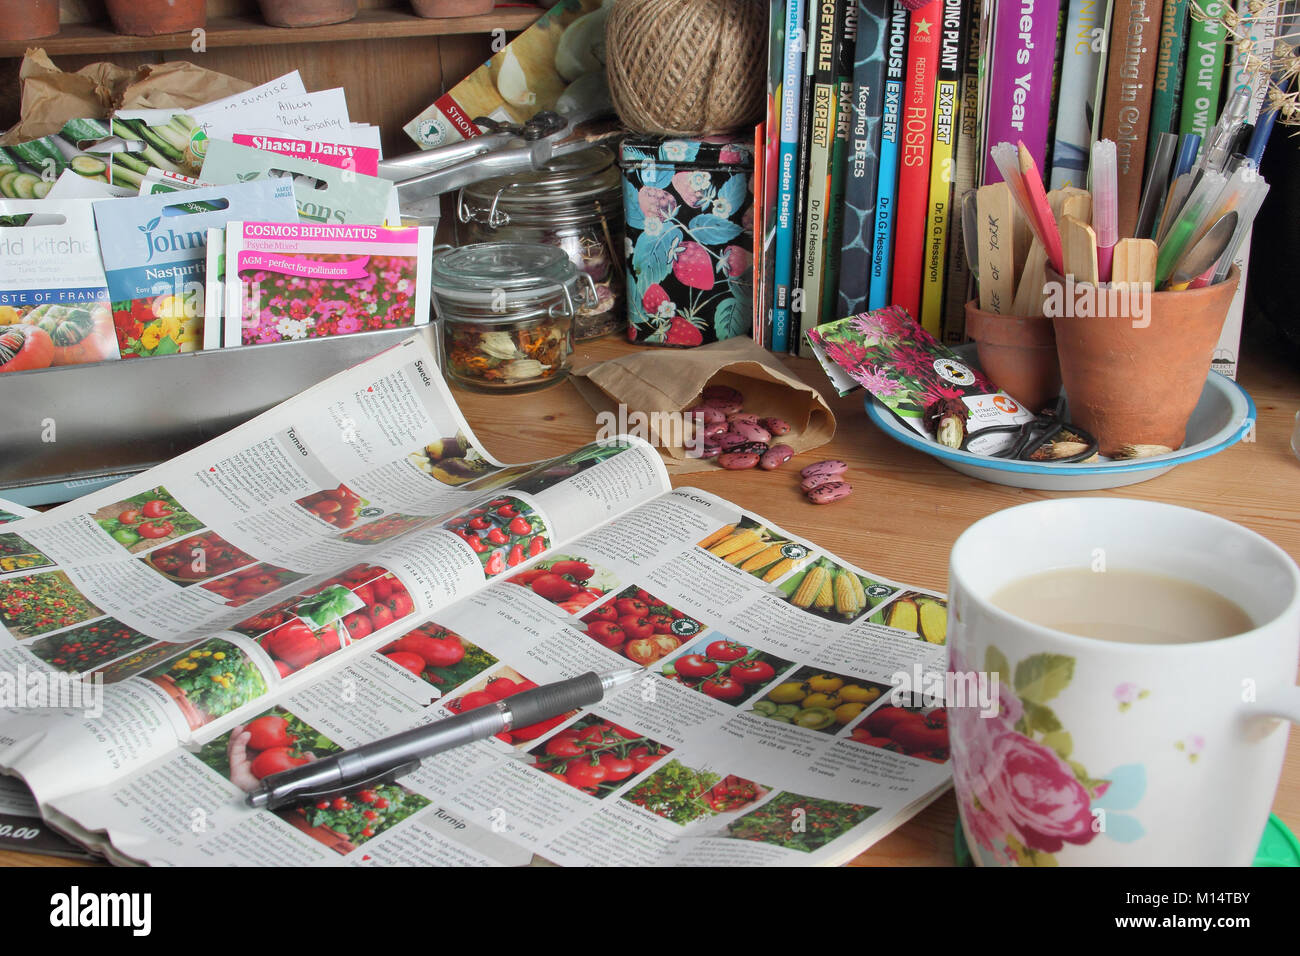 Organising seed packets and ordering seeds from a catalogue for the new planting season, in an English garden room - Stock Image